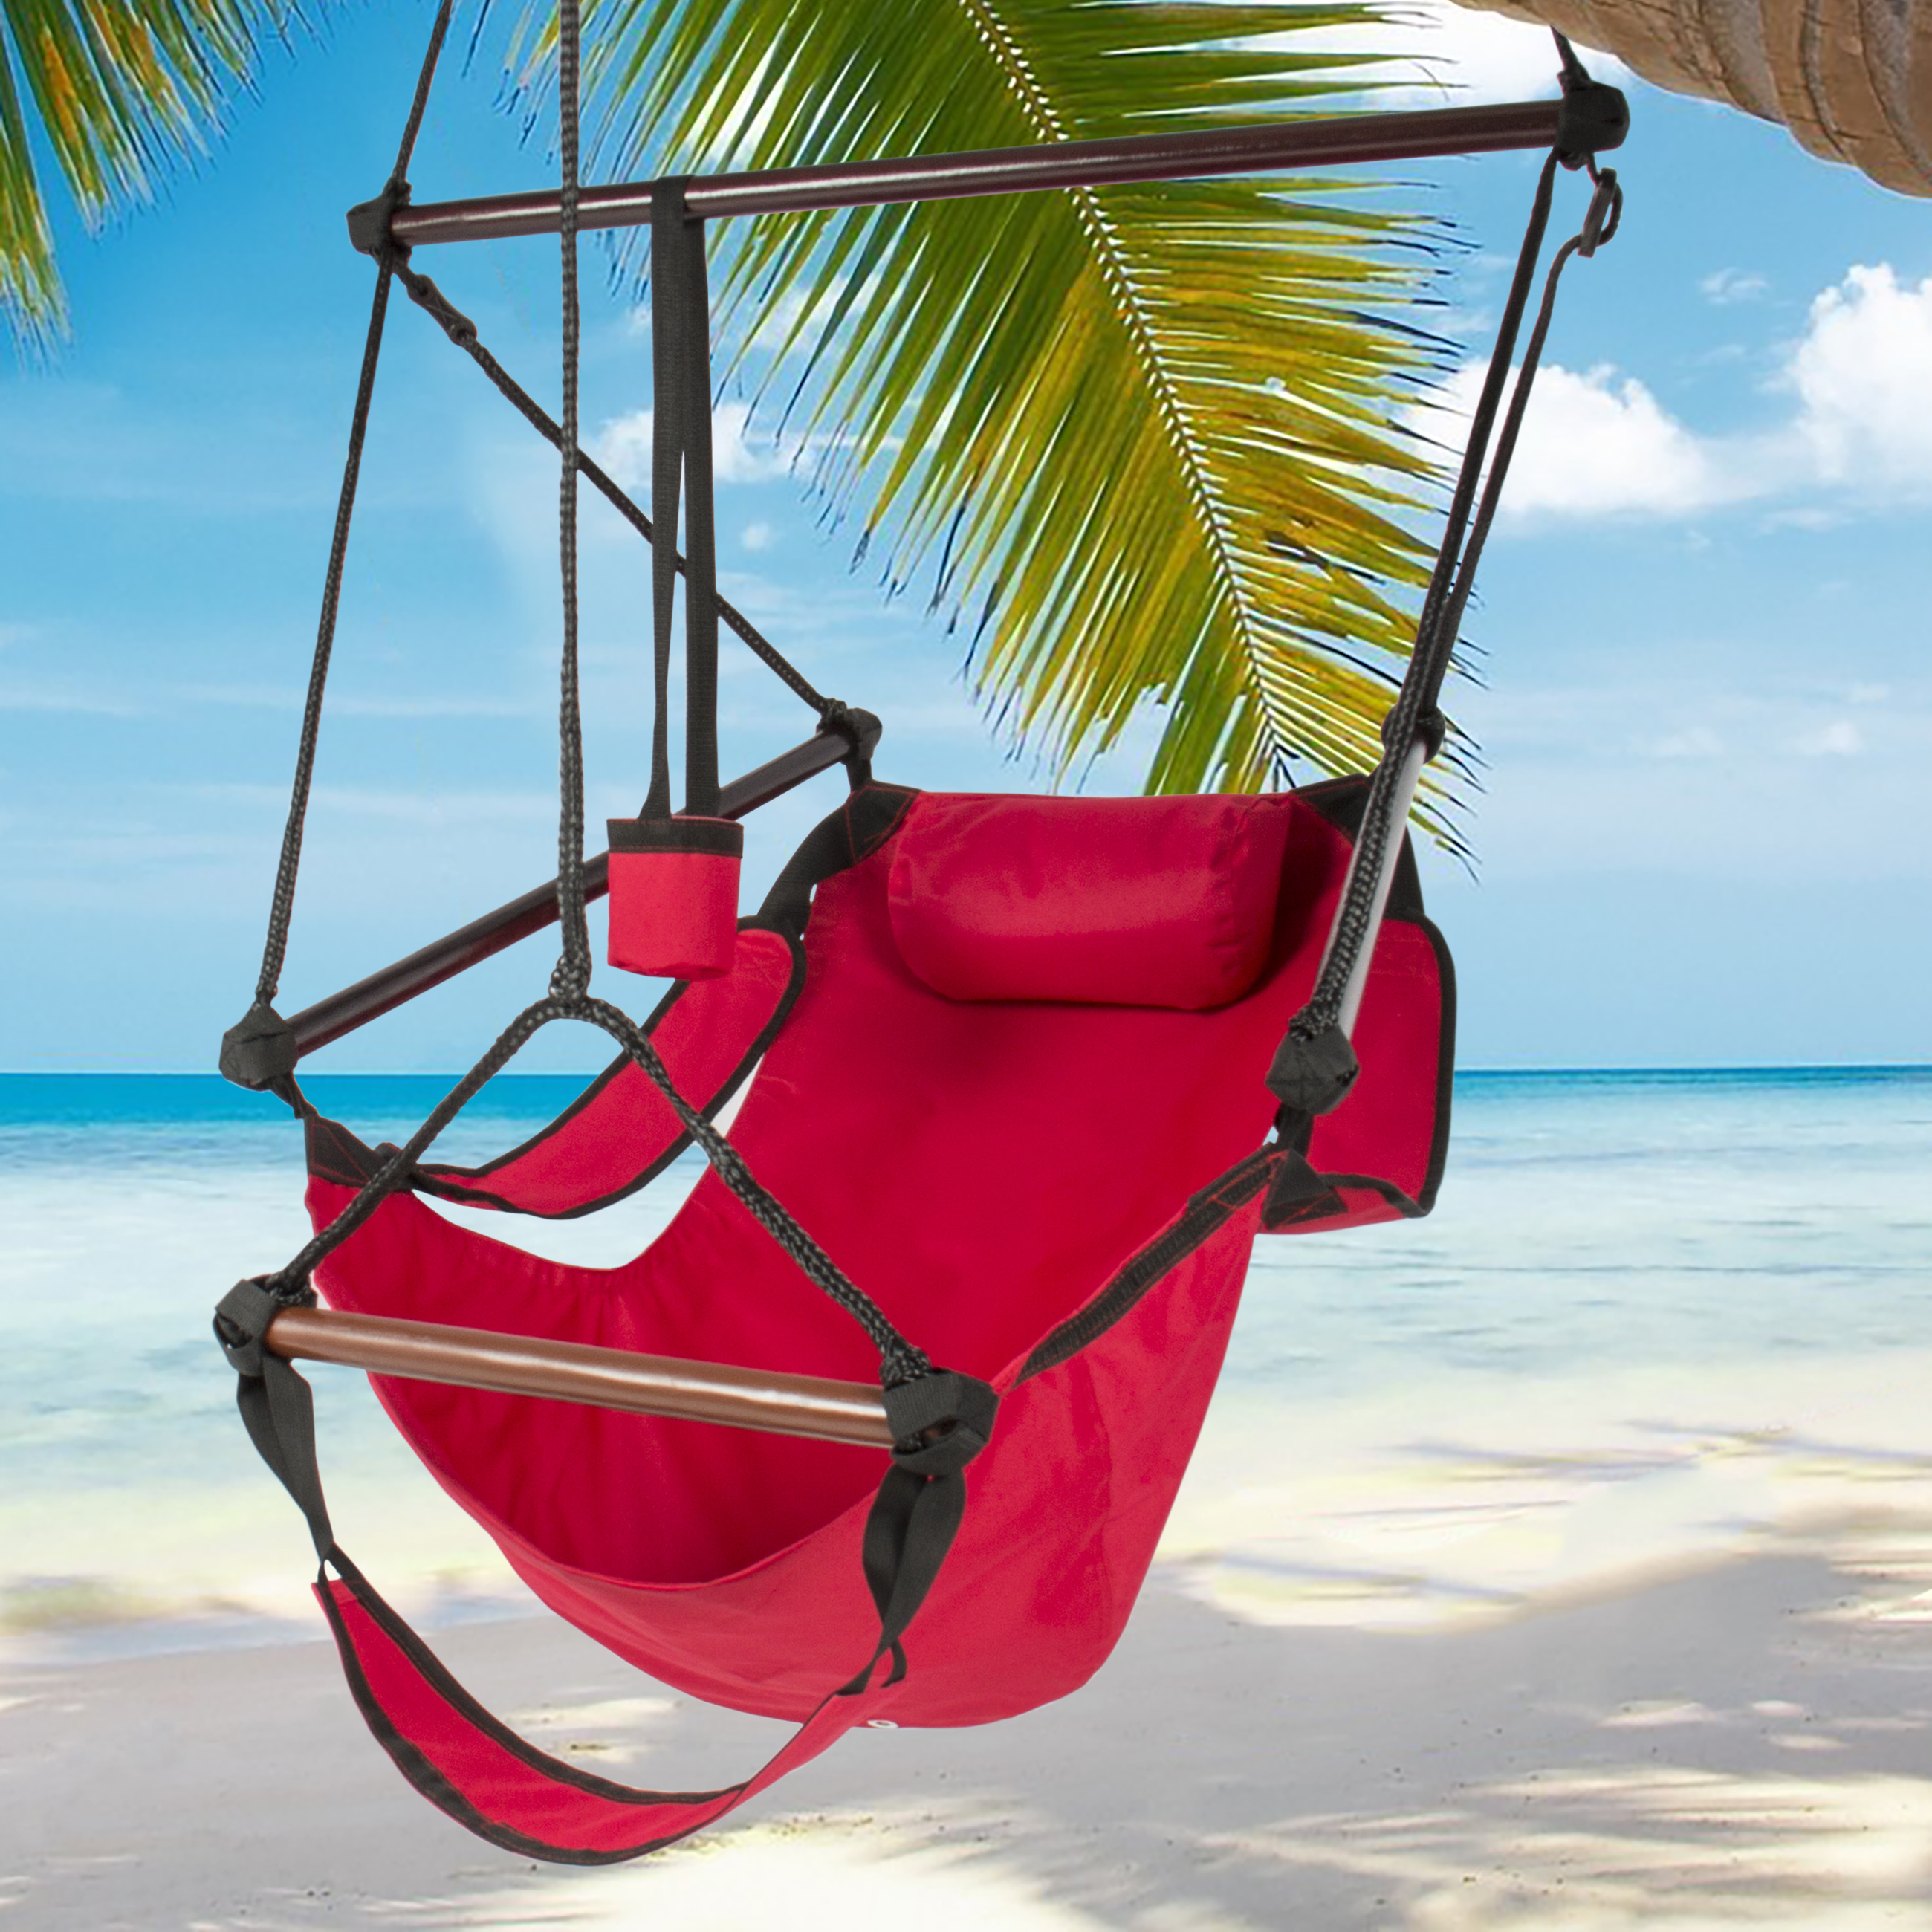 your chair budget save can swing diy stand hammock swinging